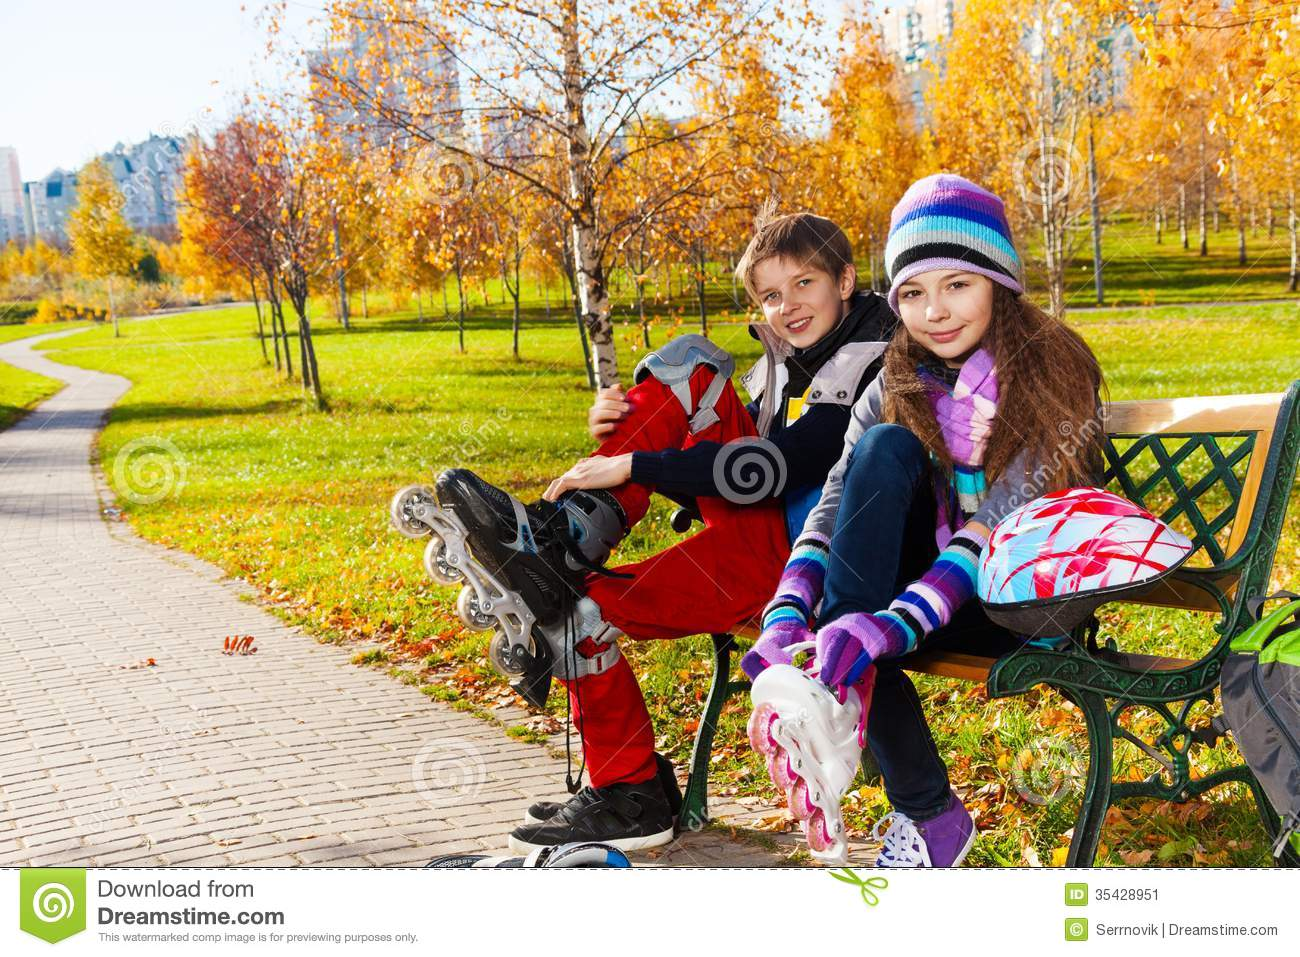 Two Kids Putting On Roller Blades Stock Image - Image ...